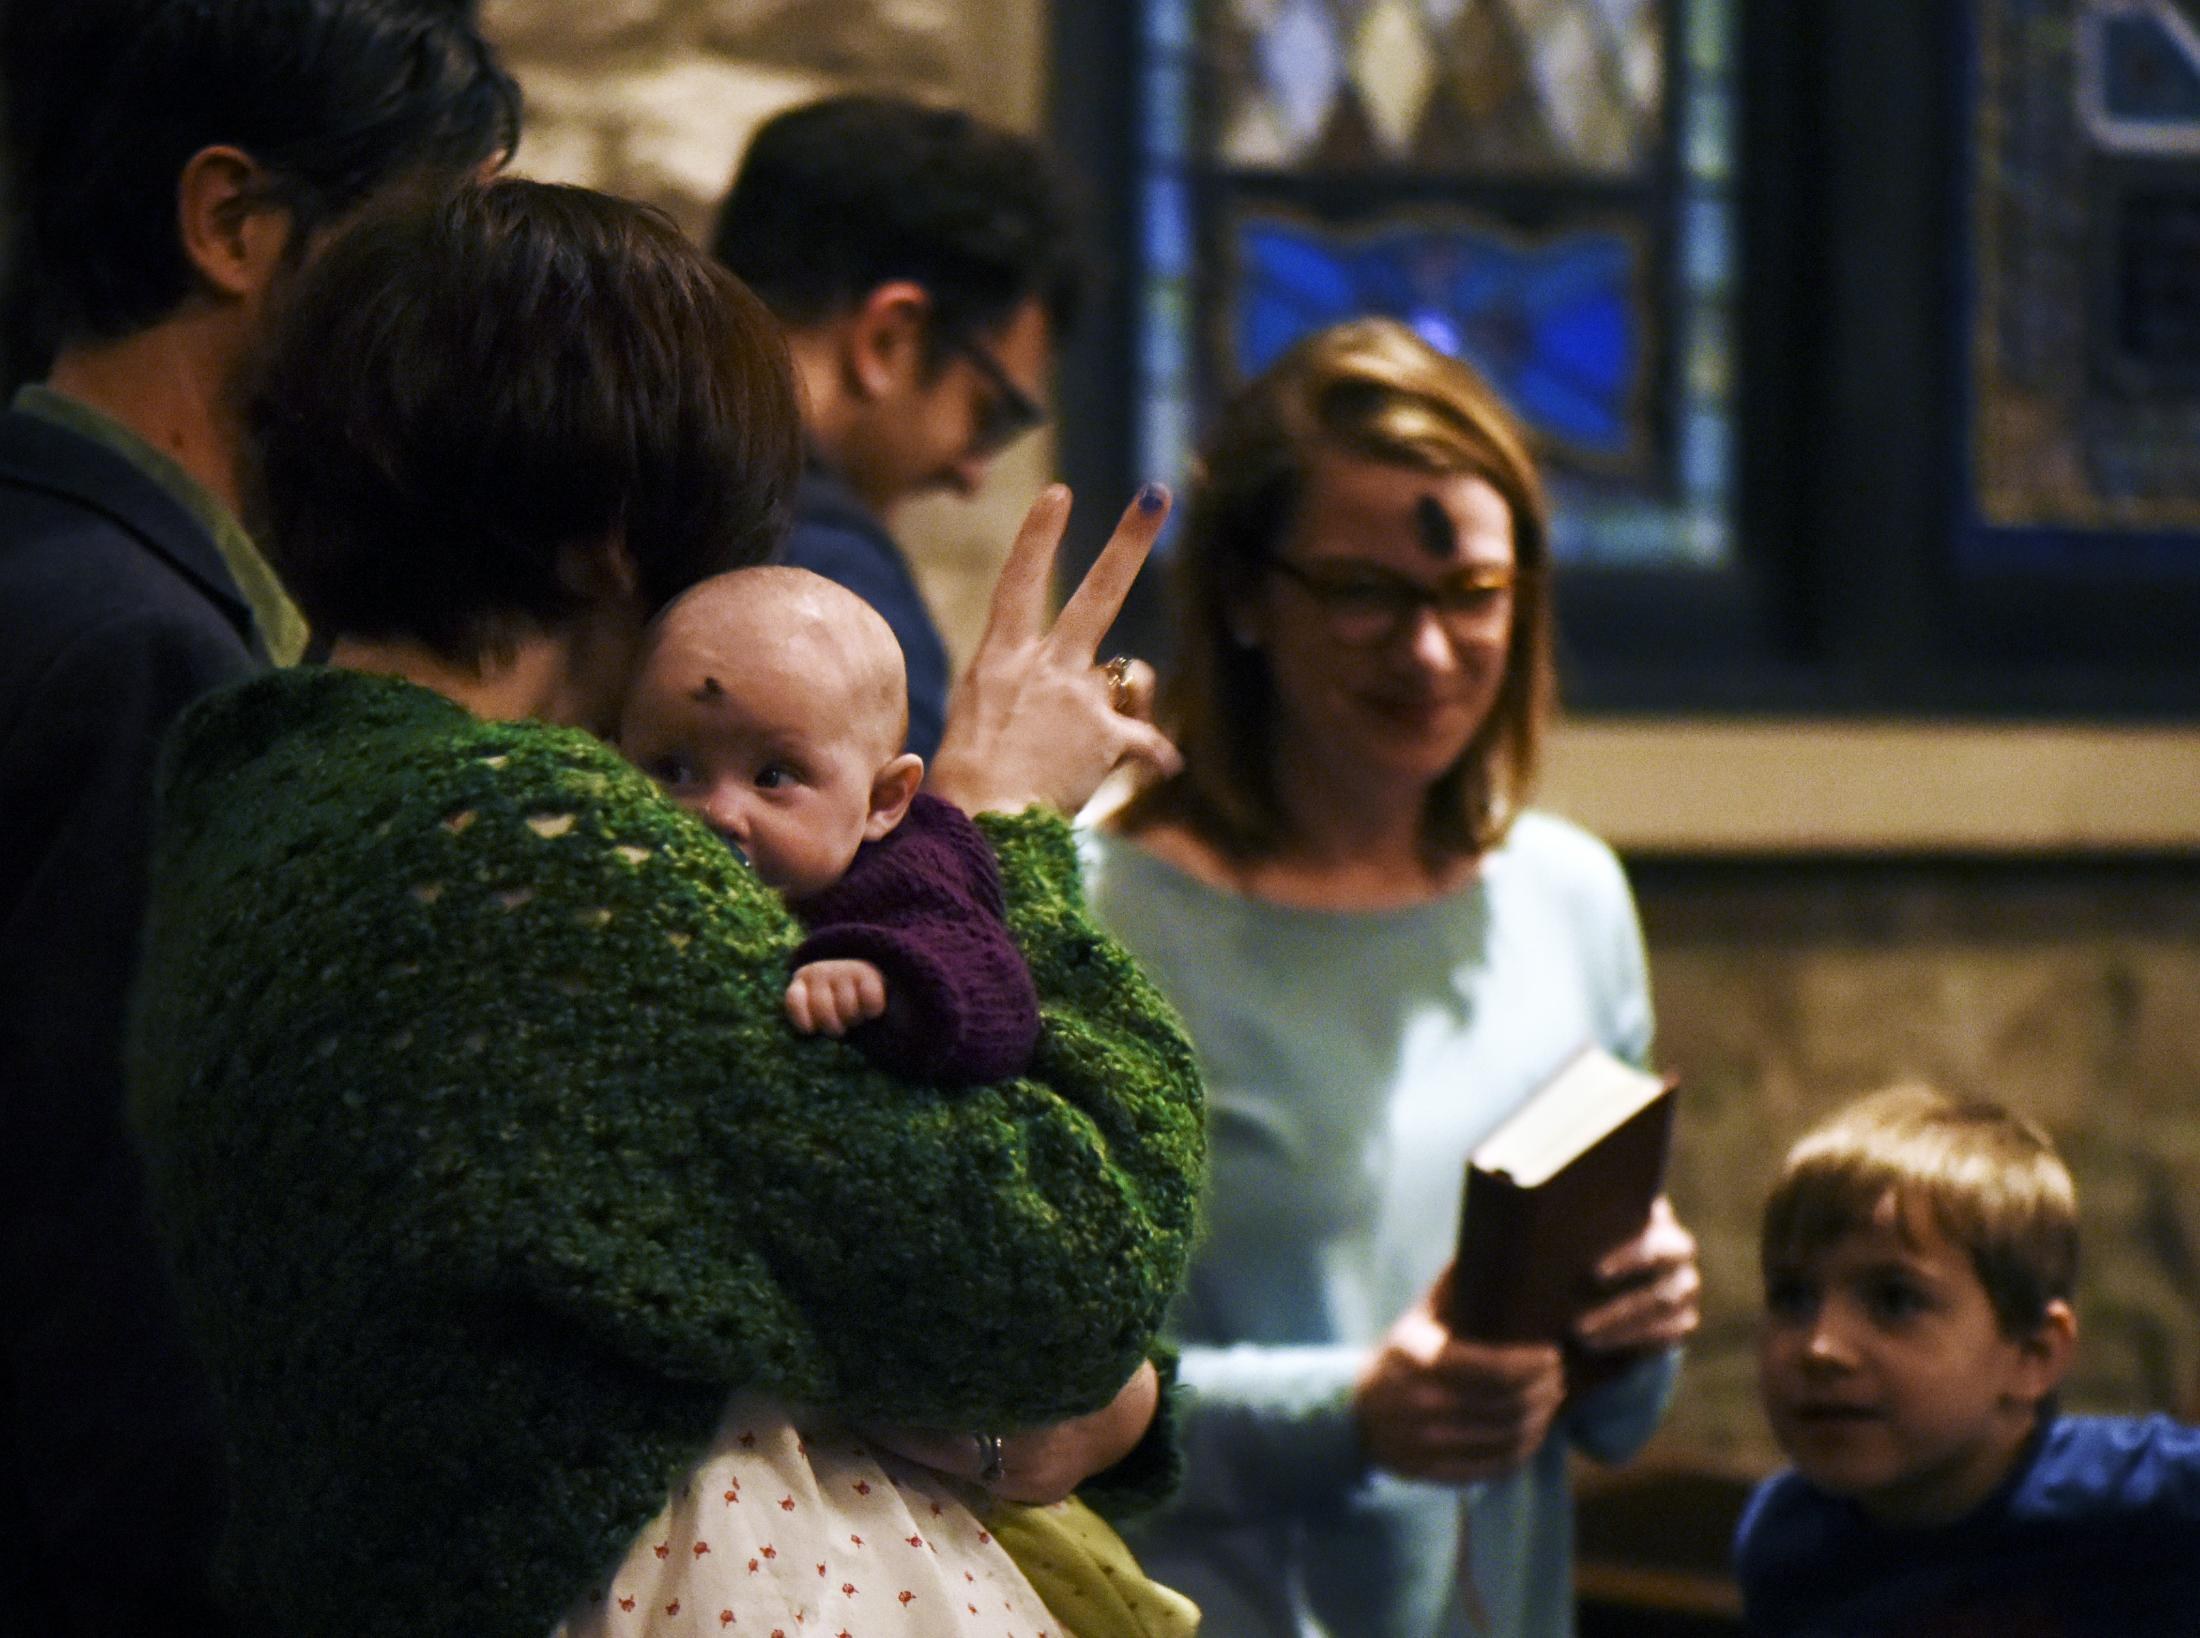 Morgan Owen passes the peace to other members of the congregation while holding her daughter, Hollis Owen, during the Ash Wednesday service on February 26, 2020, at Calvary Episcopal Church in Columbia, Missouri. Ash Wednesday signifies the beginning of Lent for some Christian denominations.